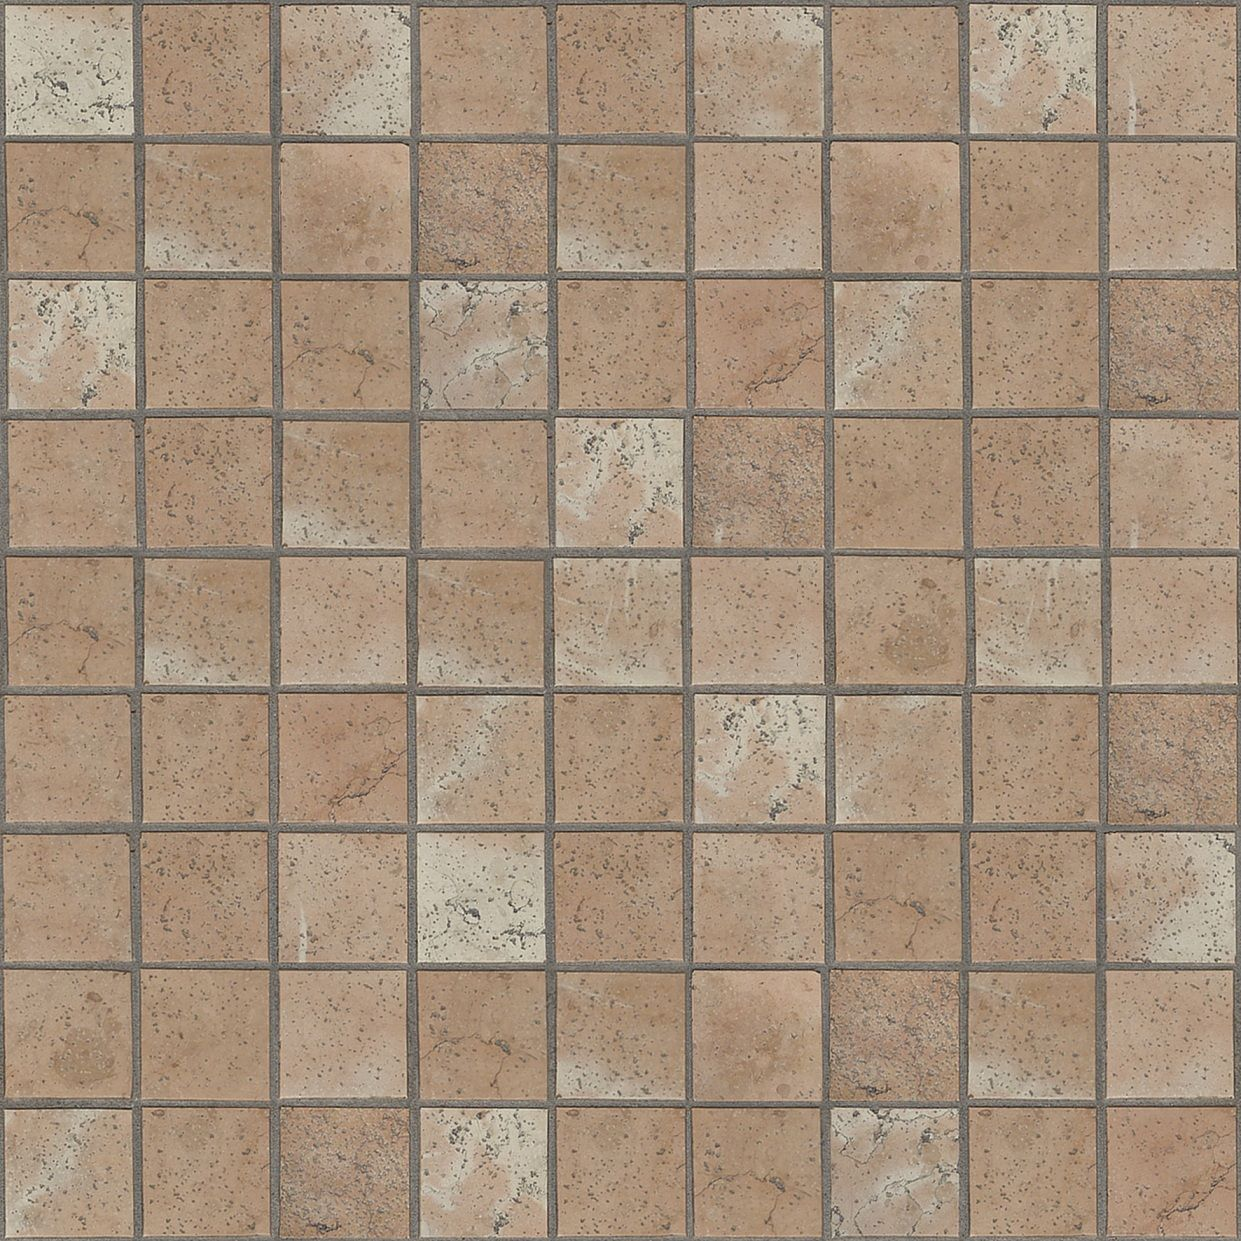 Kitchen Tile Texture Bathroom Floor Tile Texture Seamless  Stuff To Buy  Pinterest